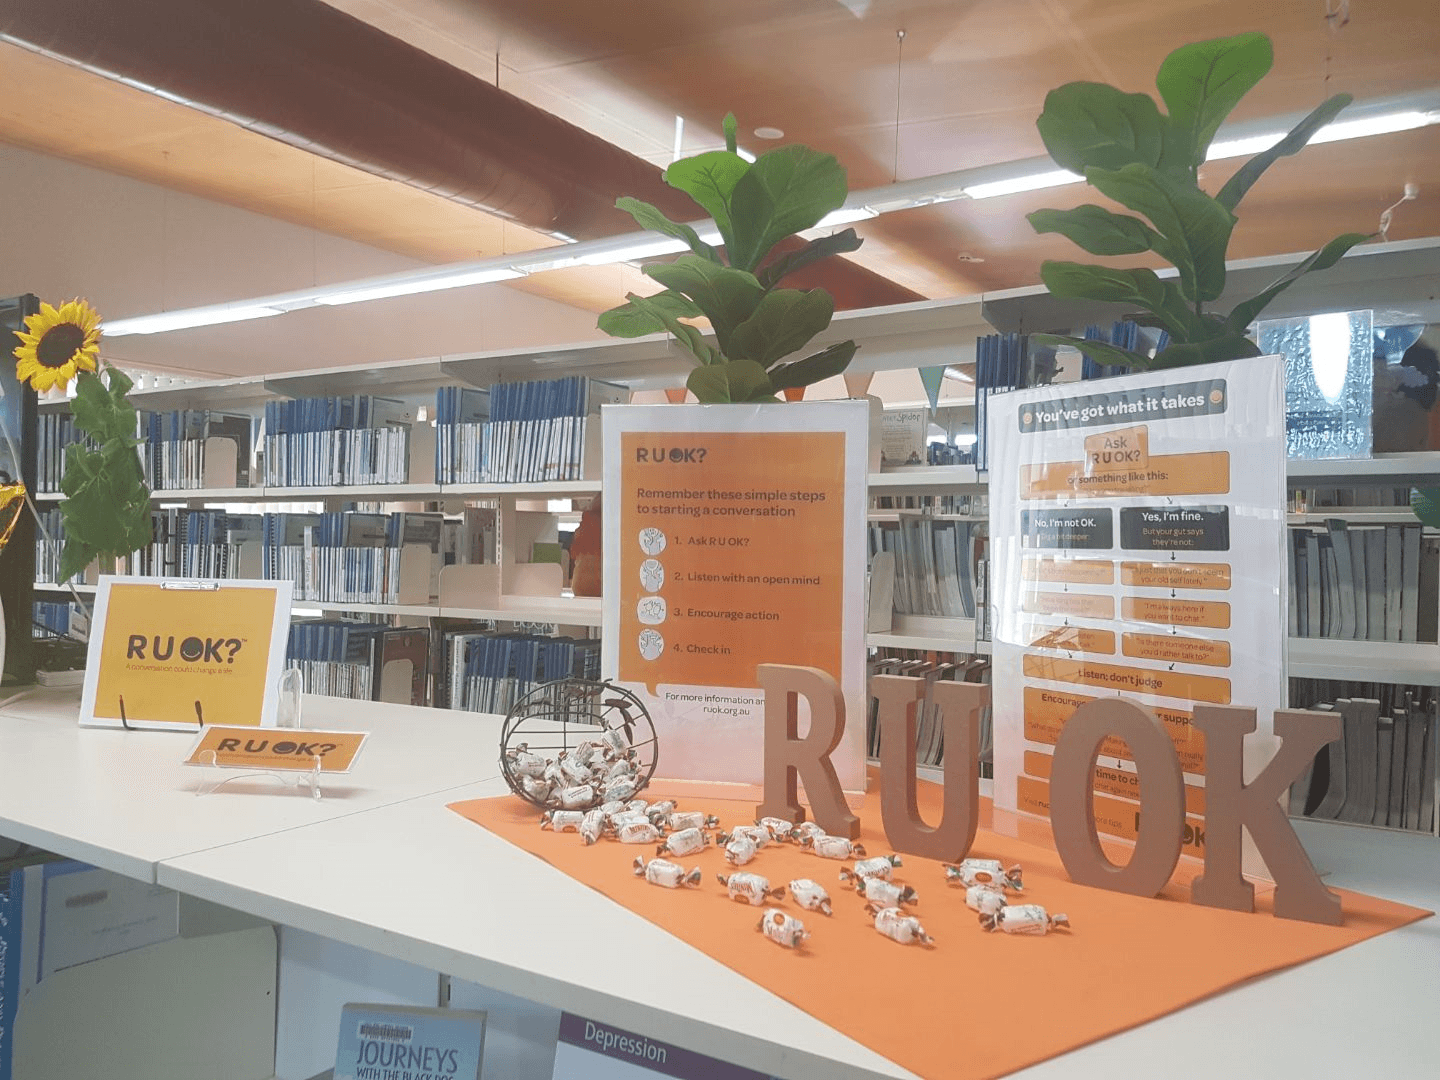 RUOK? at Cessnock Library